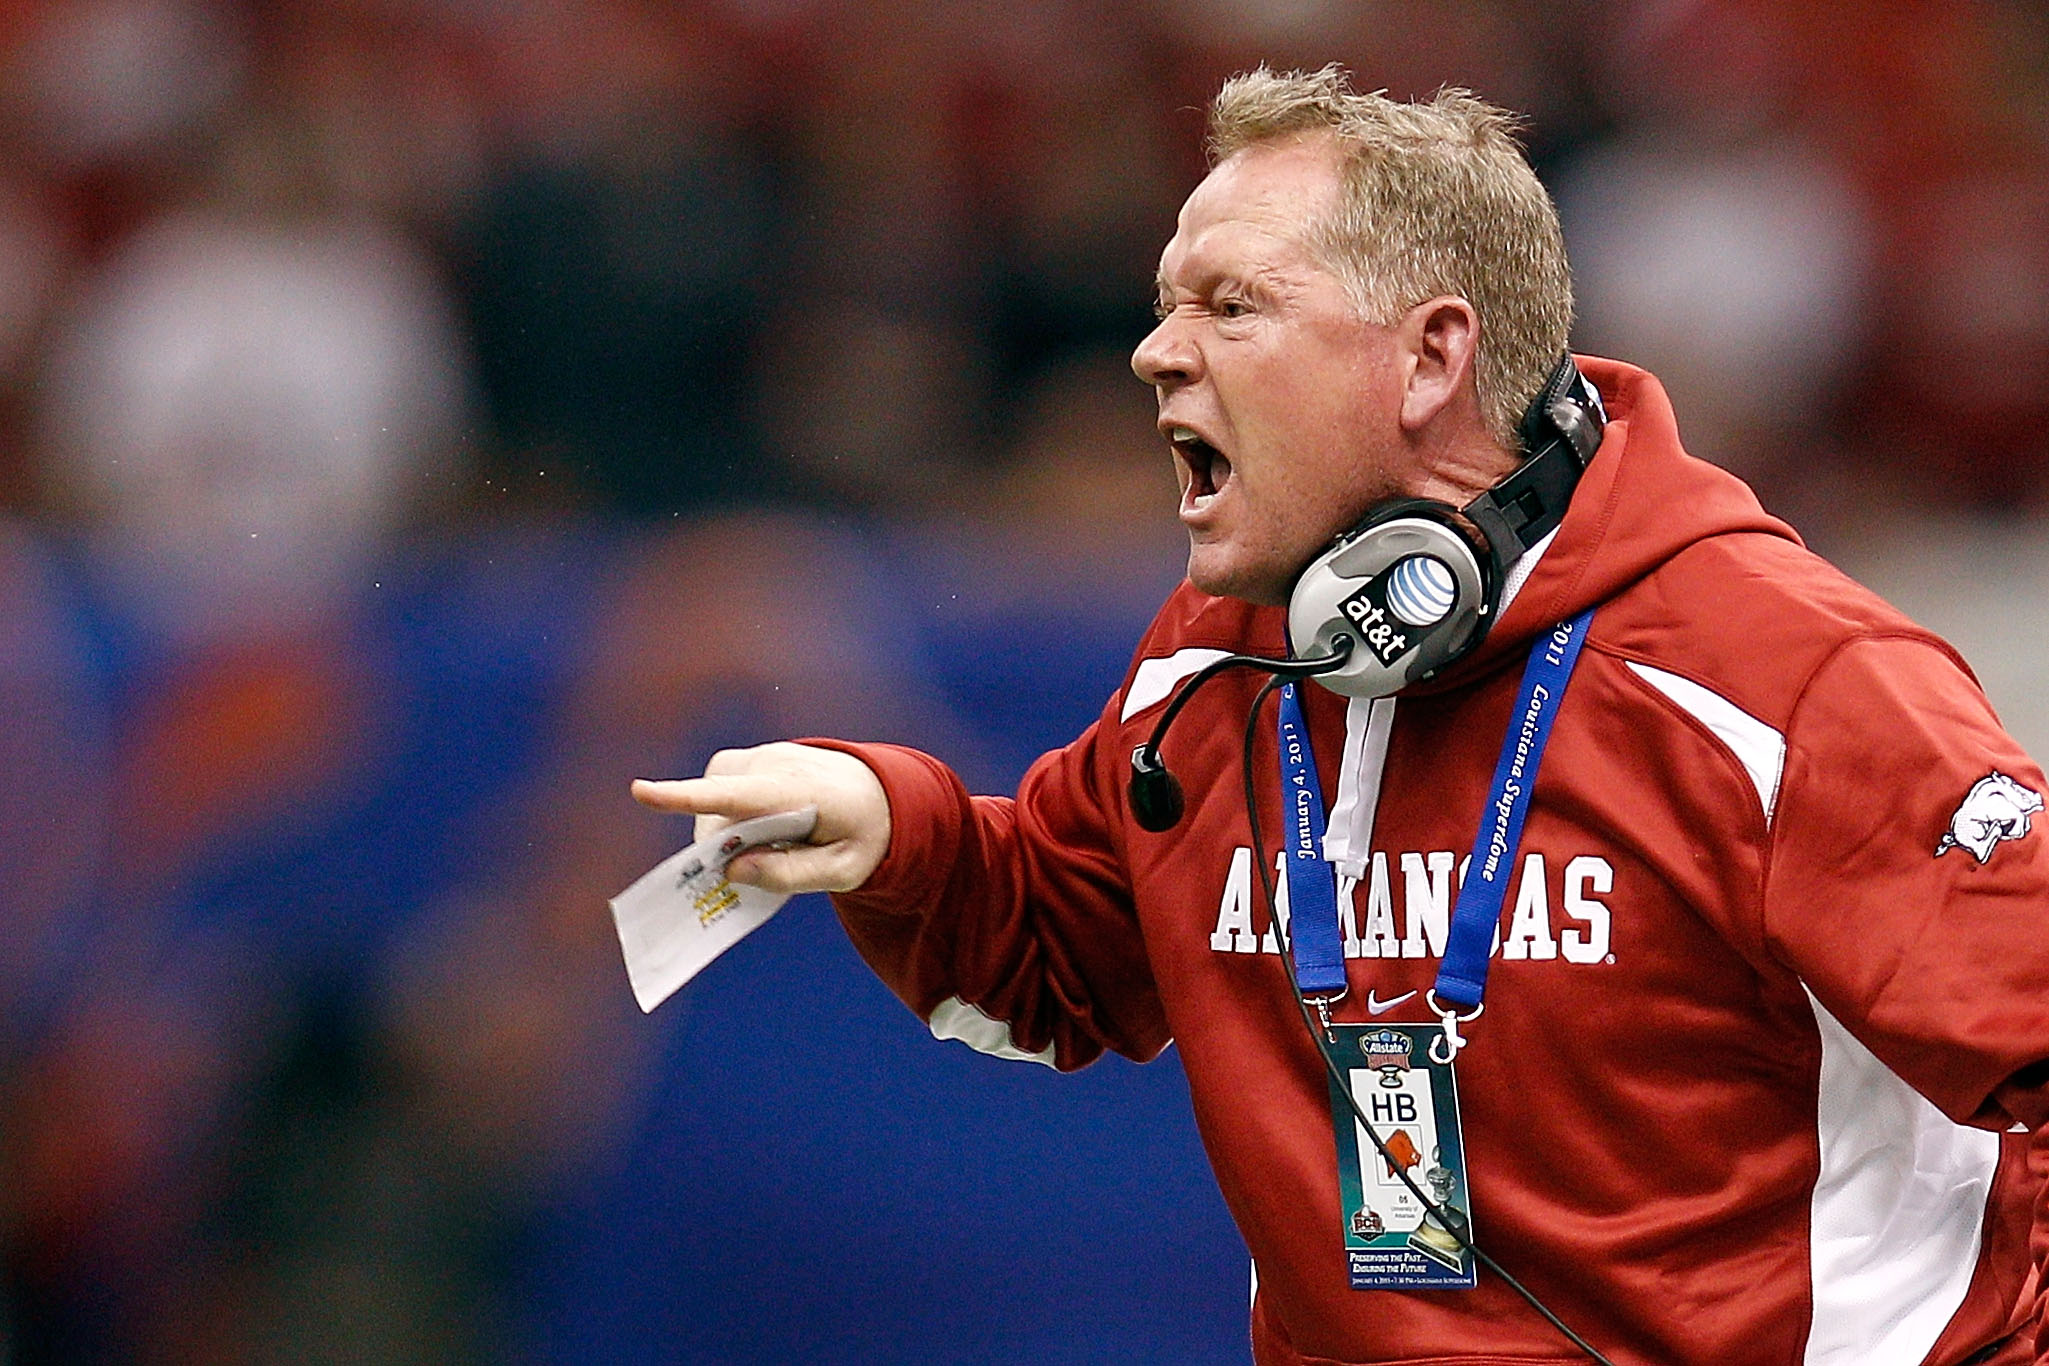 NEW ORLEANS, LA - JANUARY 04:  Head coach Bobby Petrino of the Arkansas Razorbacks reacts in the first half against the Ohio State Buckeyes during the Allstate Sugar Bowl at the Louisiana Superdome on January 4, 2011 in New Orleans, Louisiana.  (Photo by